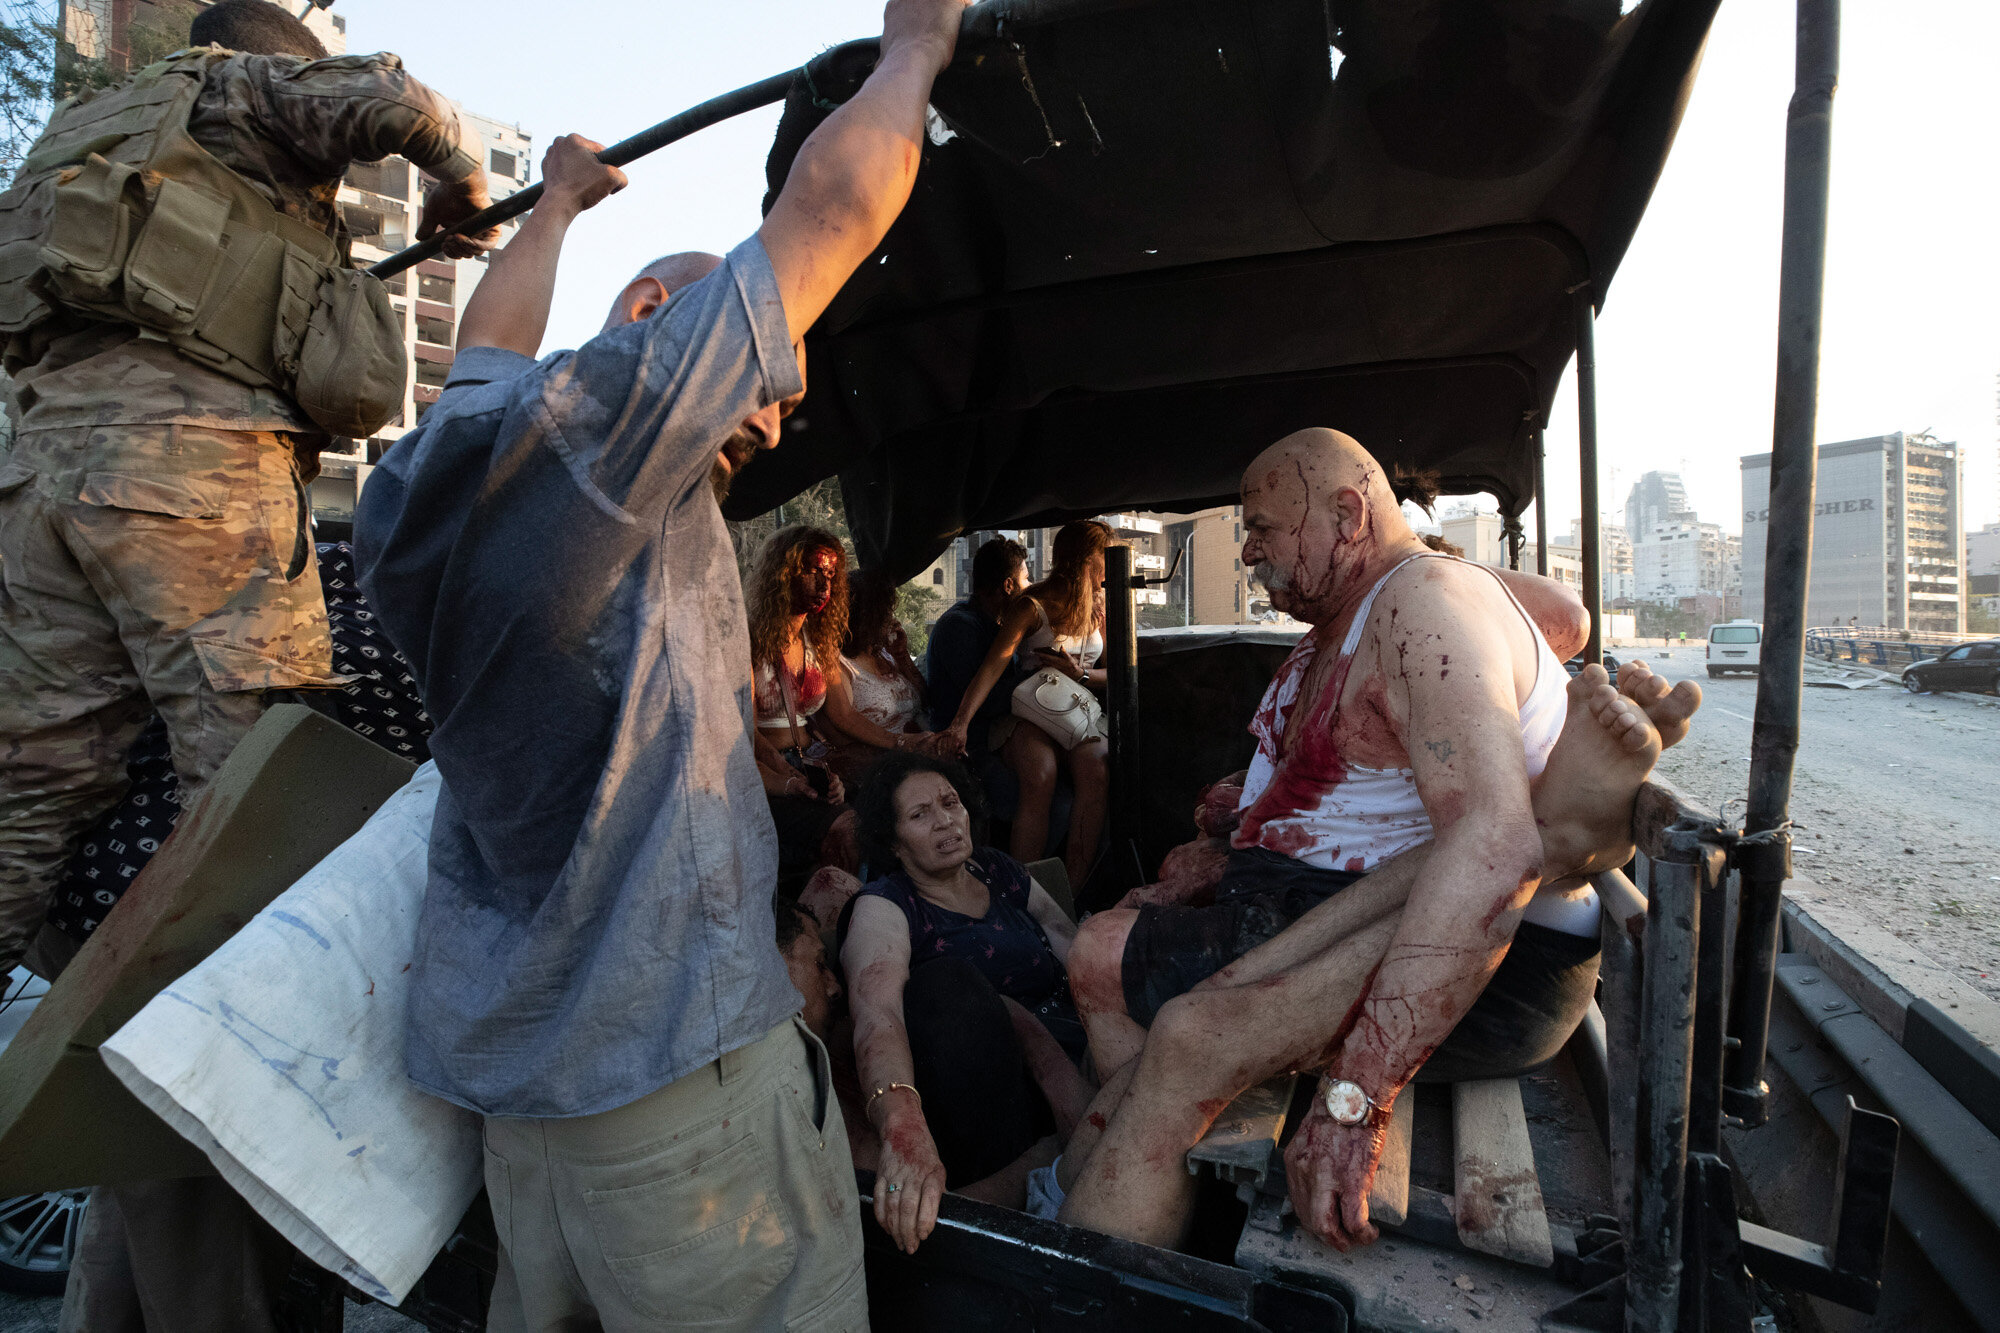 Injured people are evacuated shortly after a massive explosion at the port in Beirut, Lebanon, on Aug. 4, 2020. (AP Photo/Hassan Ammar)